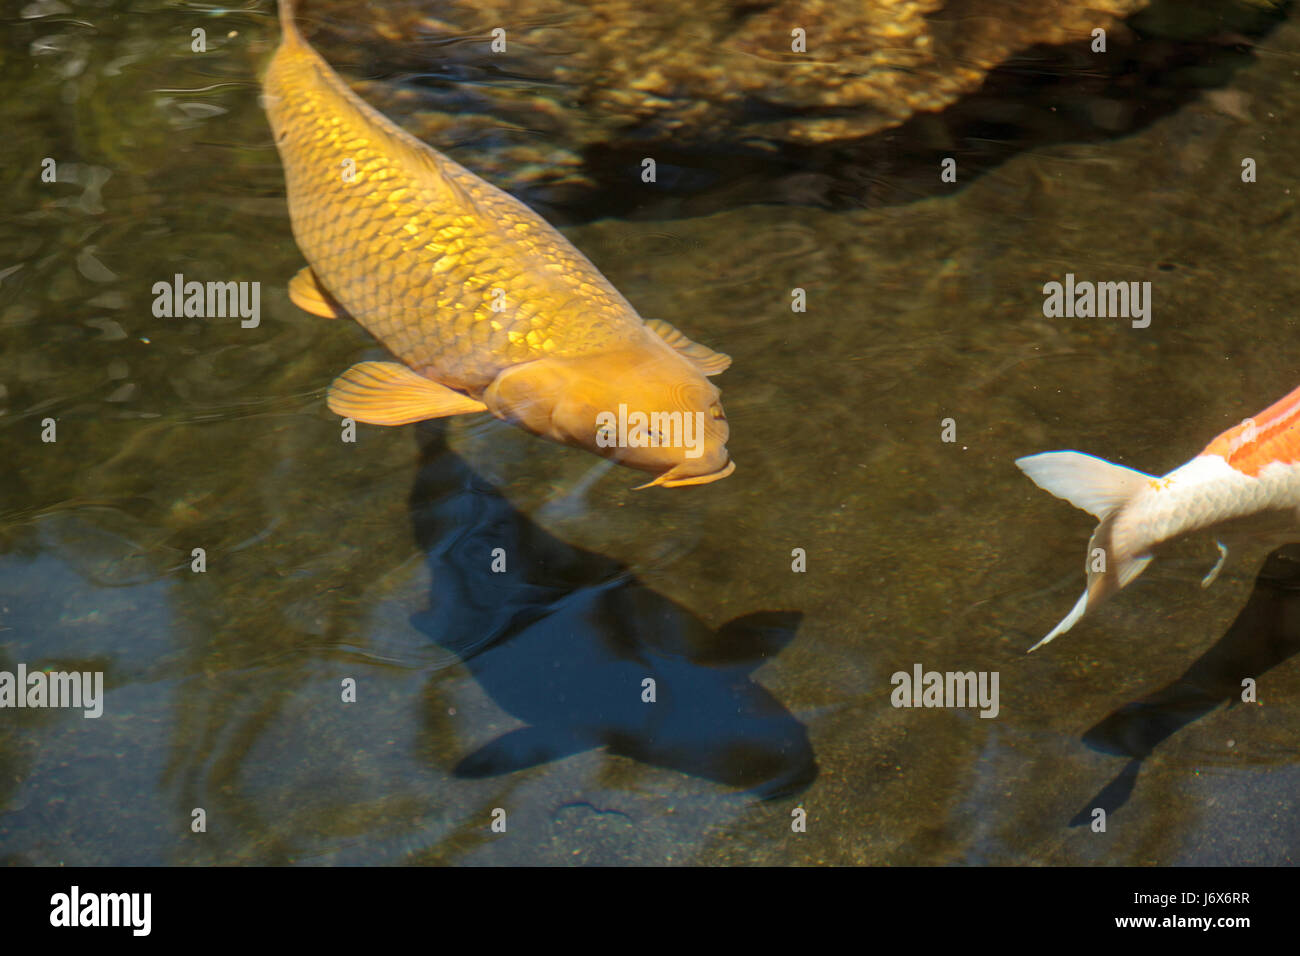 Haematopterus stock photos haematopterus stock images for Freshwater koi fish